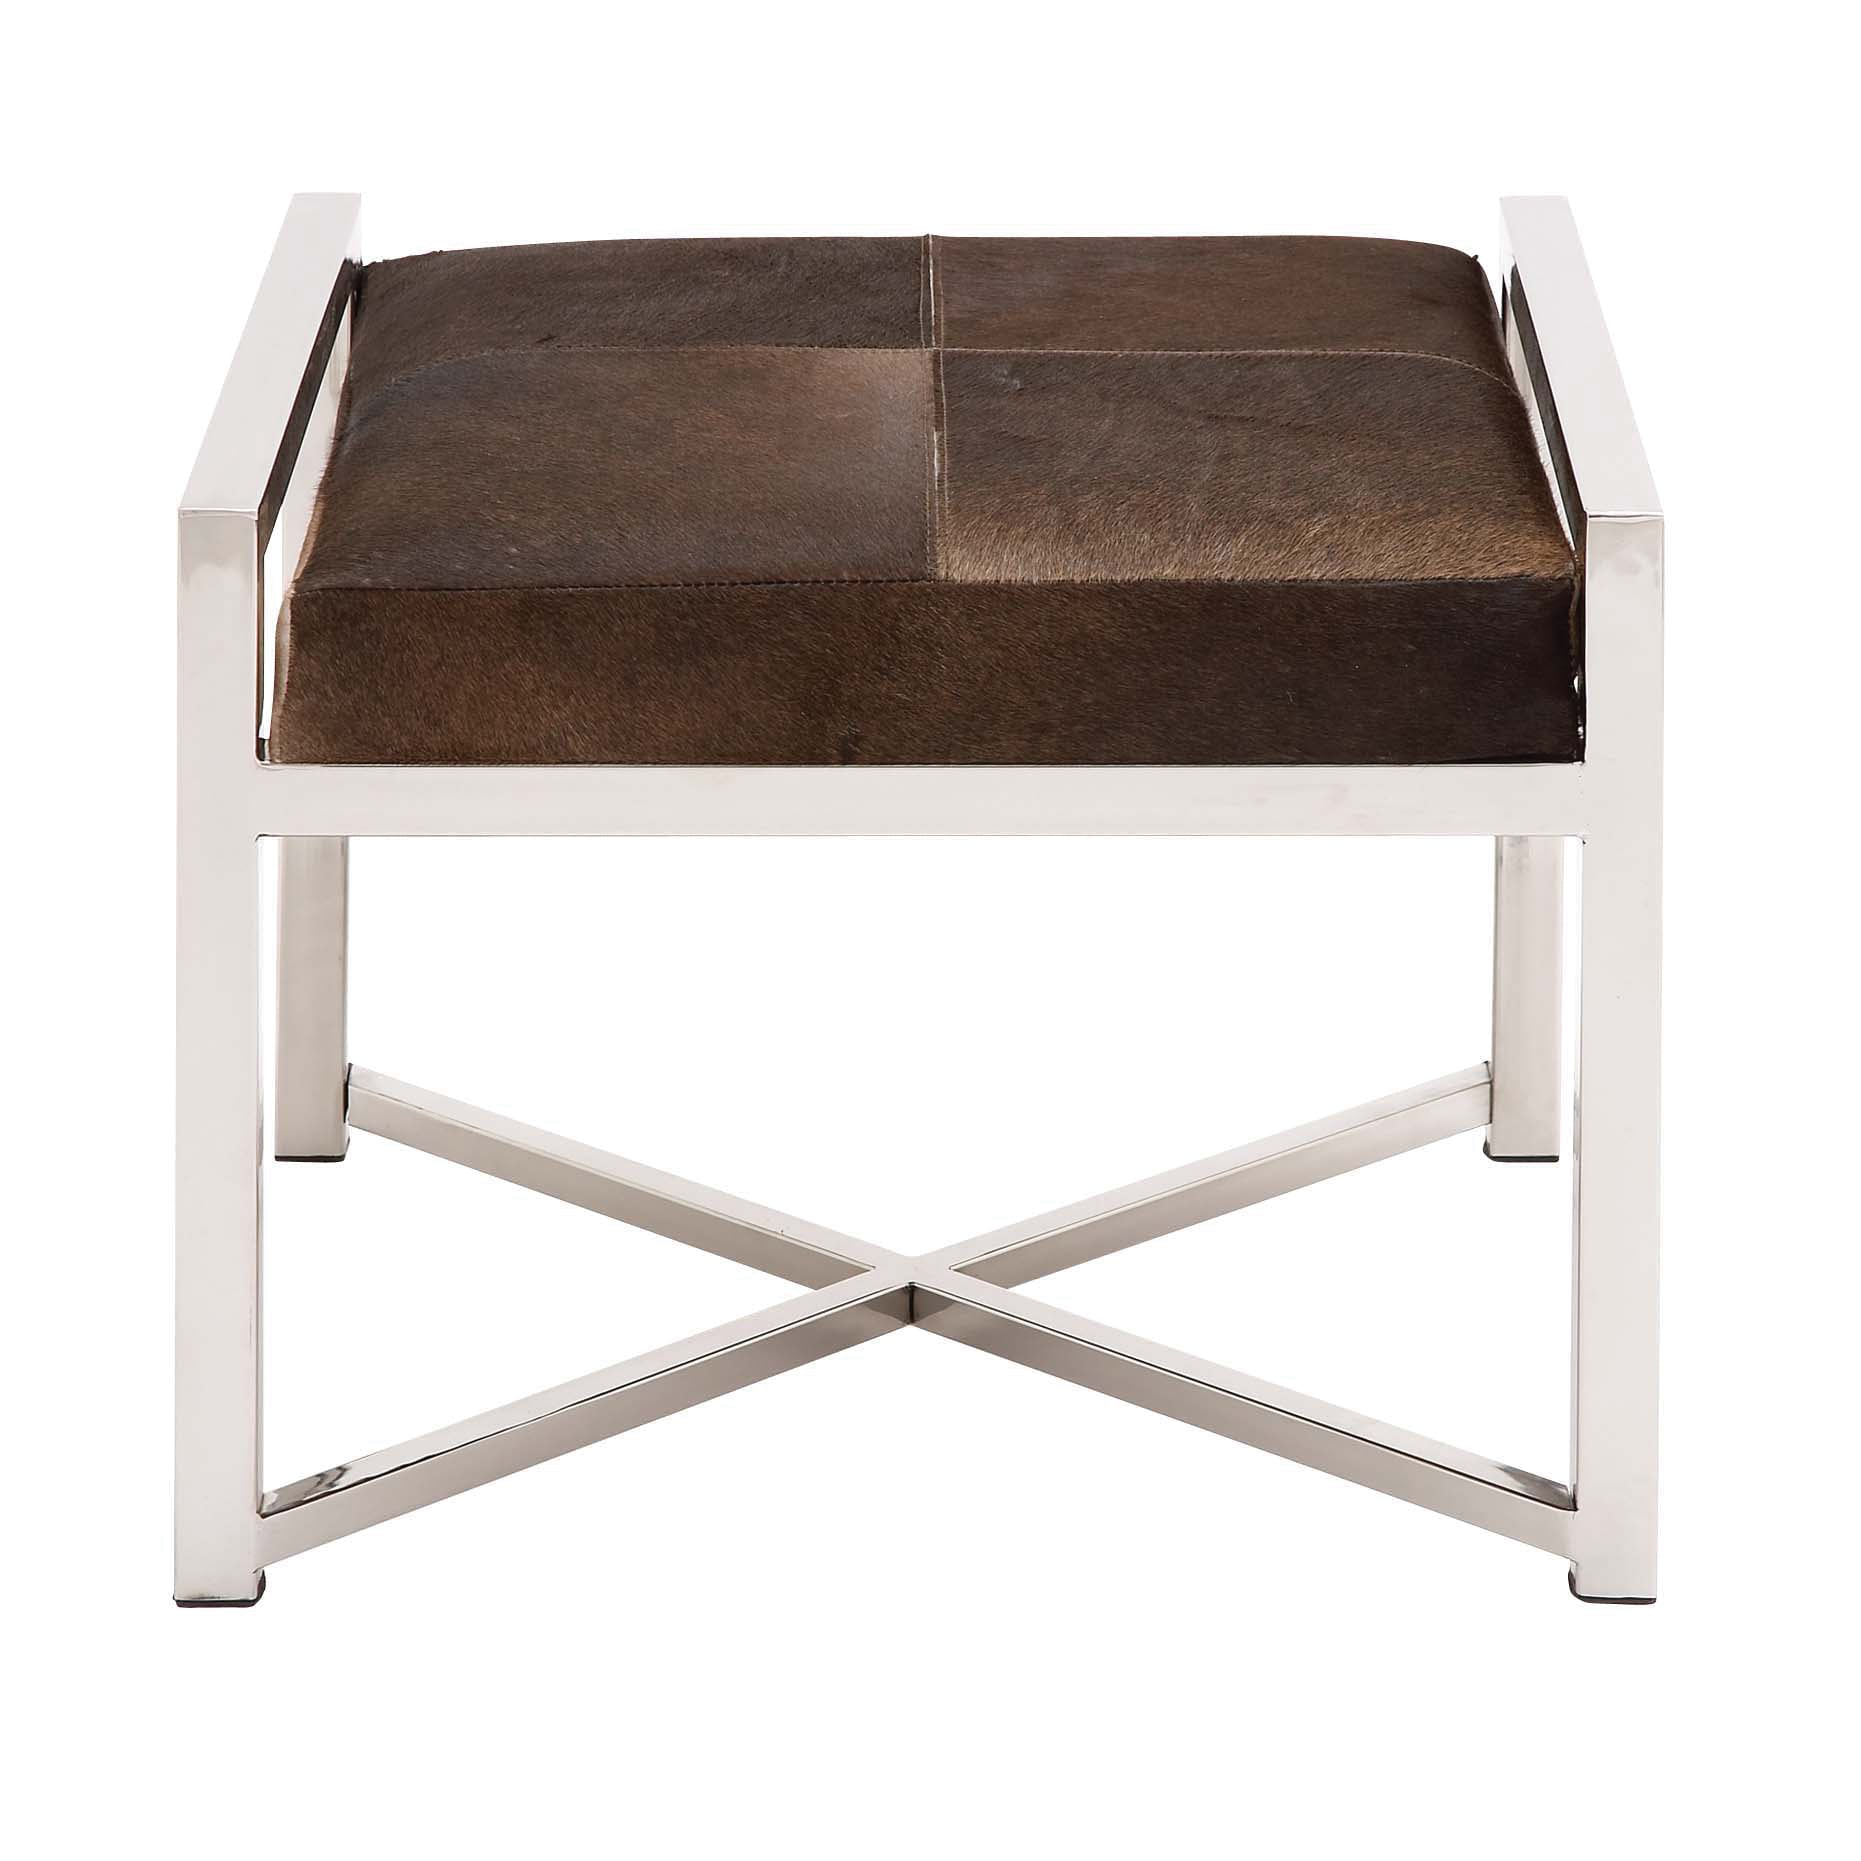 ottomans of coffee bench scheme storage cowhide blue table with tray ottoman round